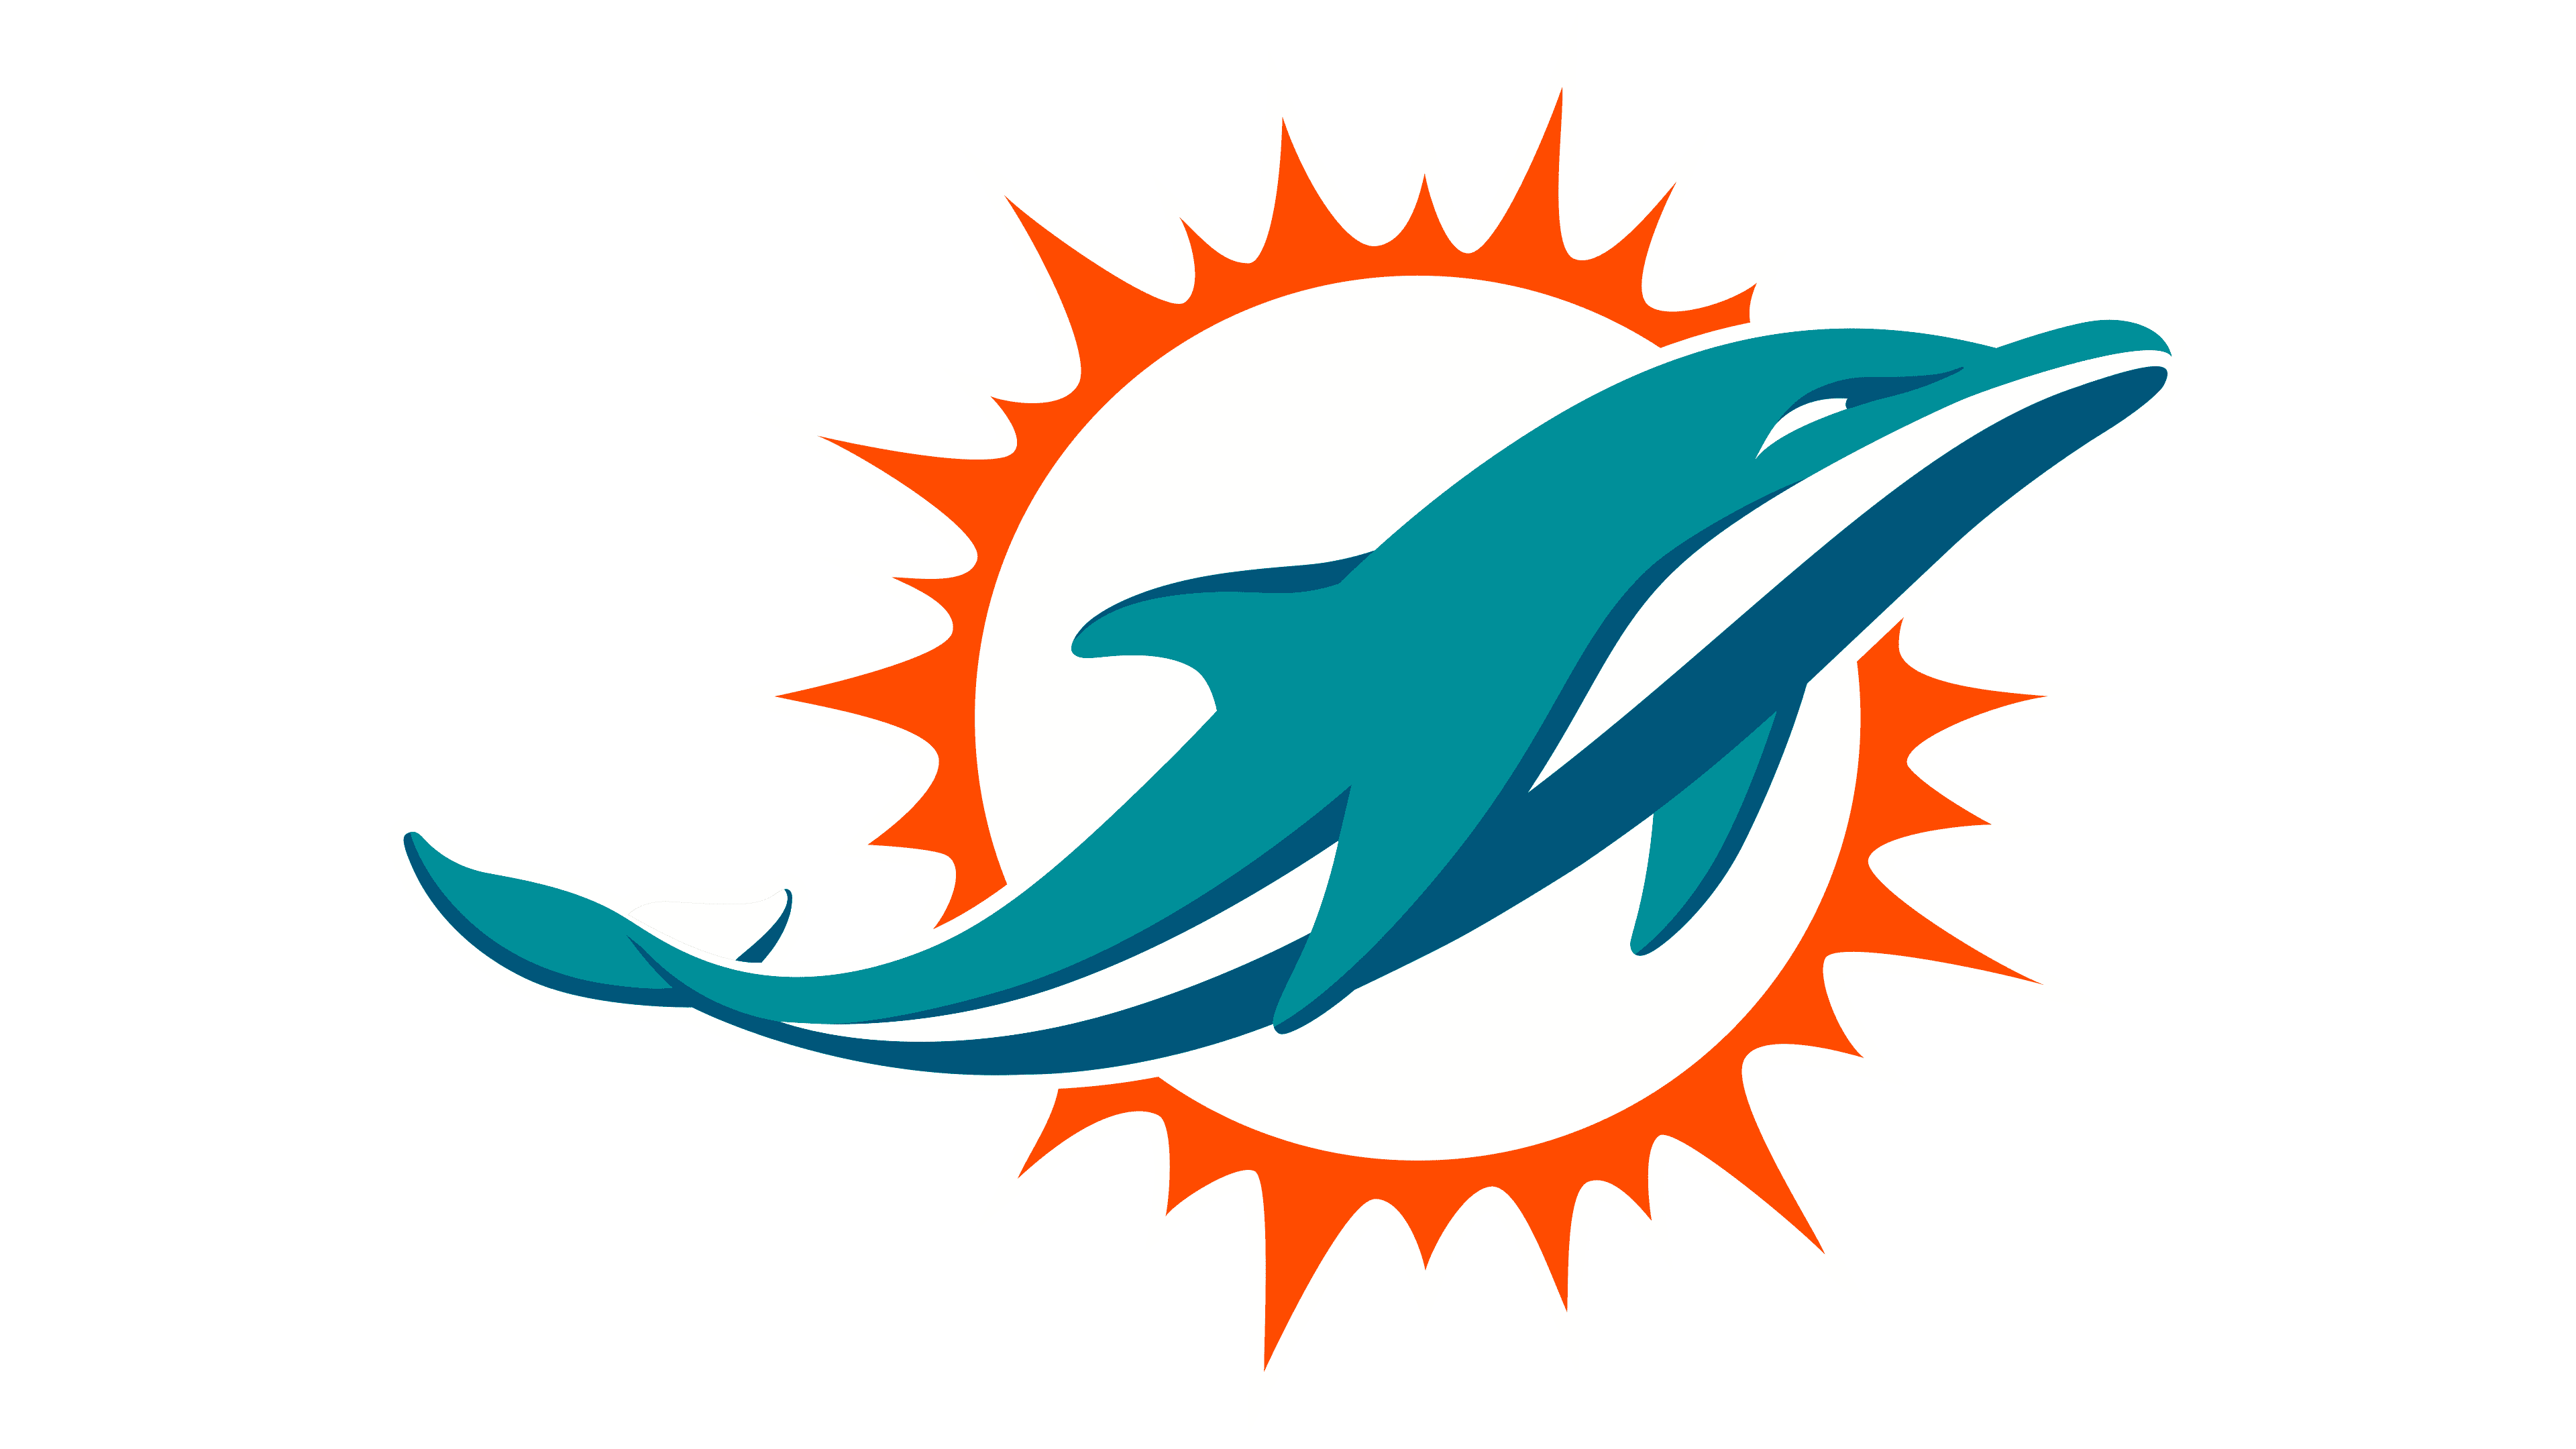 Miami Dolphins Logo | The most famous brands and company logos in the world